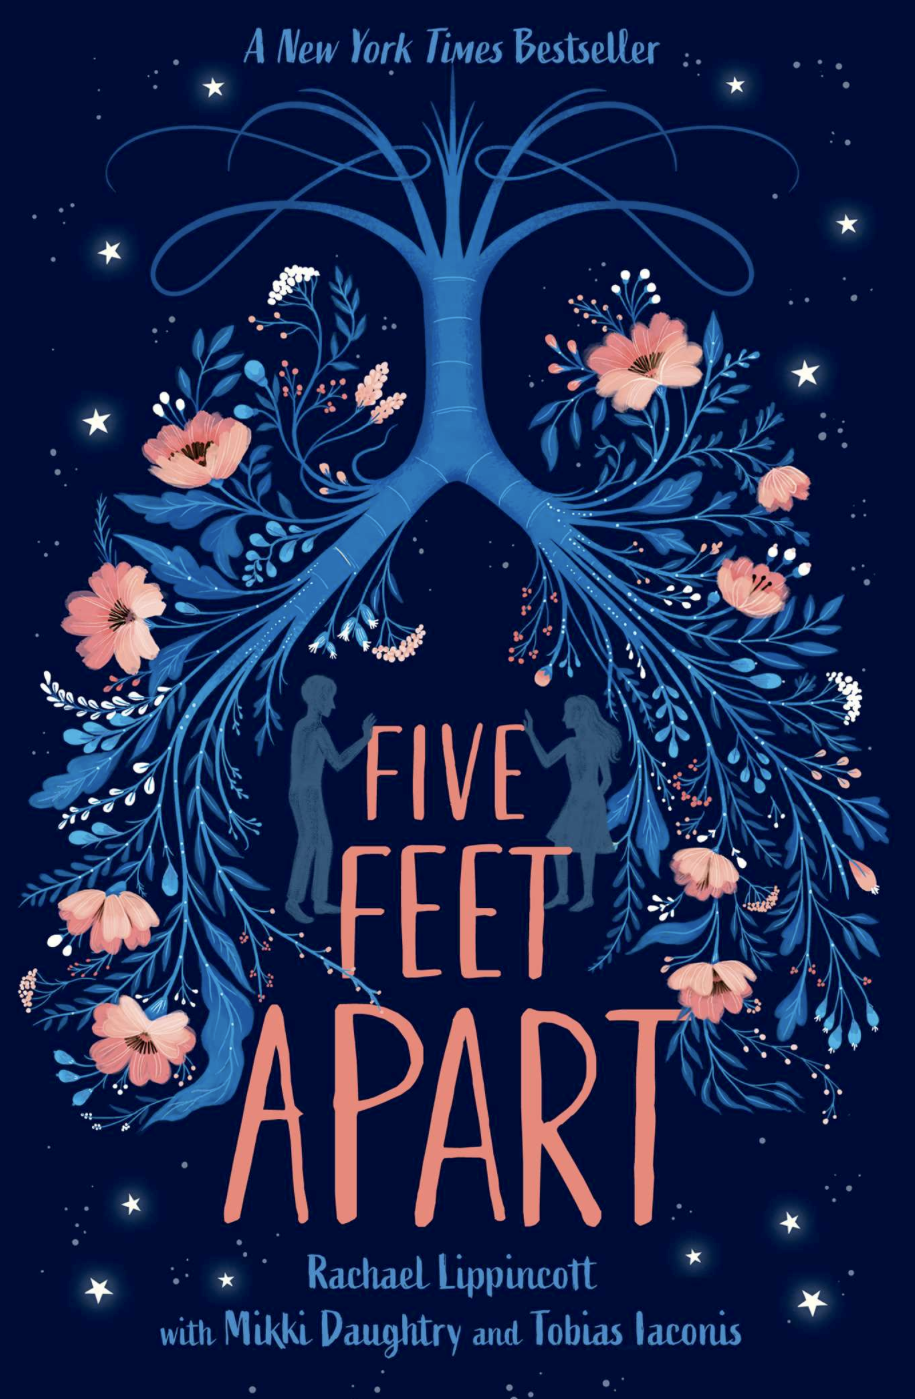 The cover of the novel 'Five Feet Apart' by Rachael Lippincott, with Mikki Daughtry and Tobias Iaconis is based of the film that will release March 22. Used with permission under fair use